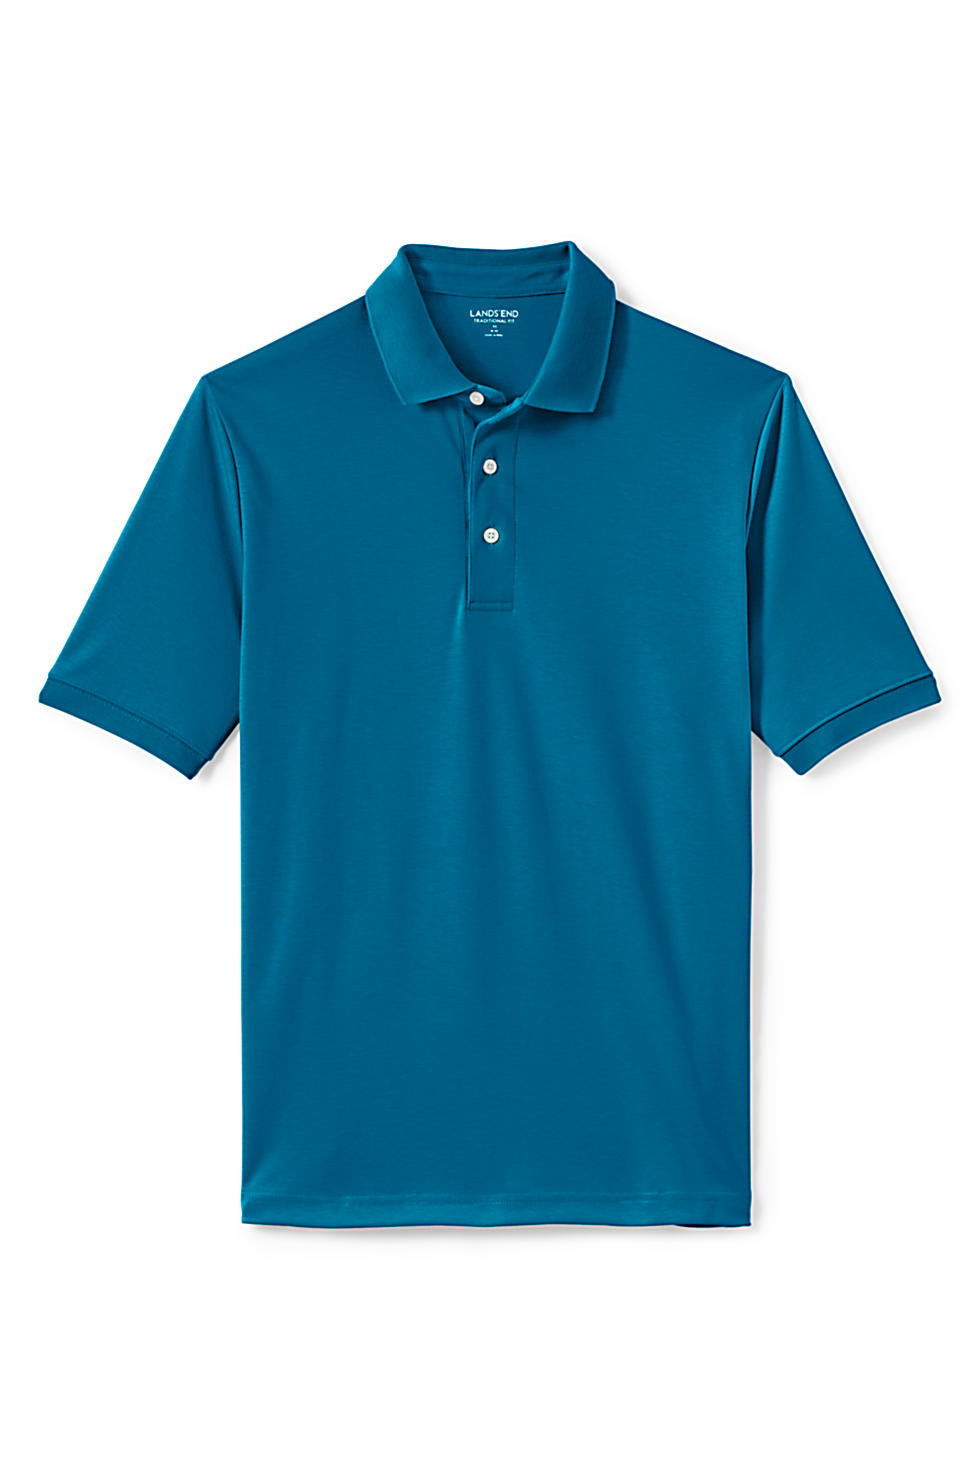 Lands' End Men's Tailored Fit Supima Polo Shirt